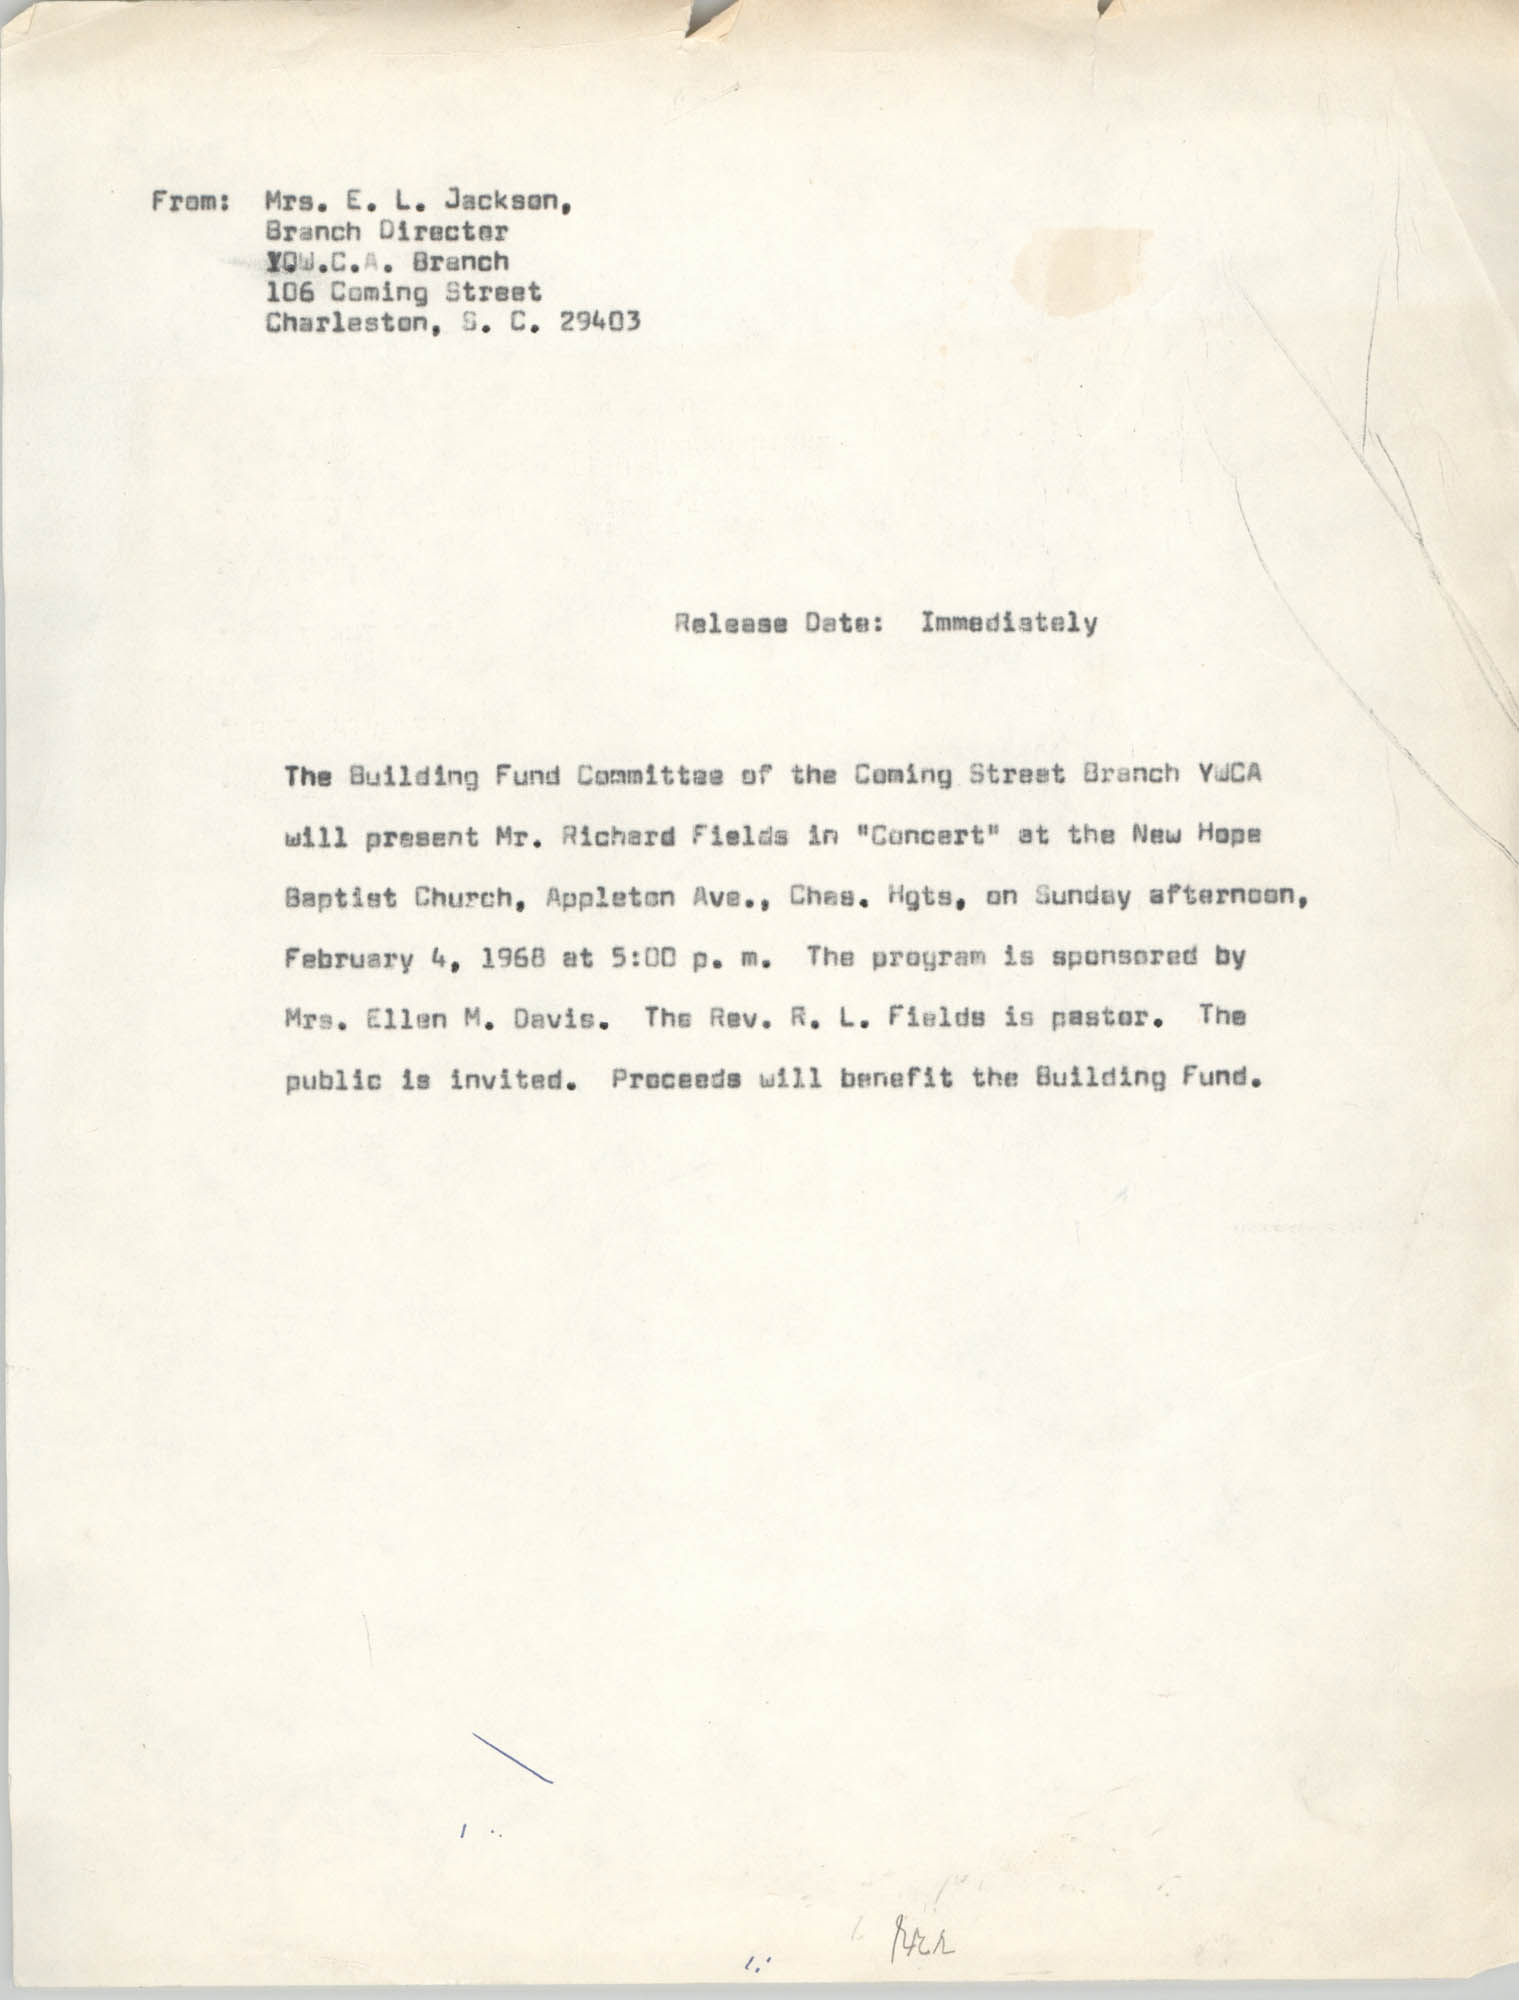 Coming Street Y.W.C.A. Press Release, February 4, 1968